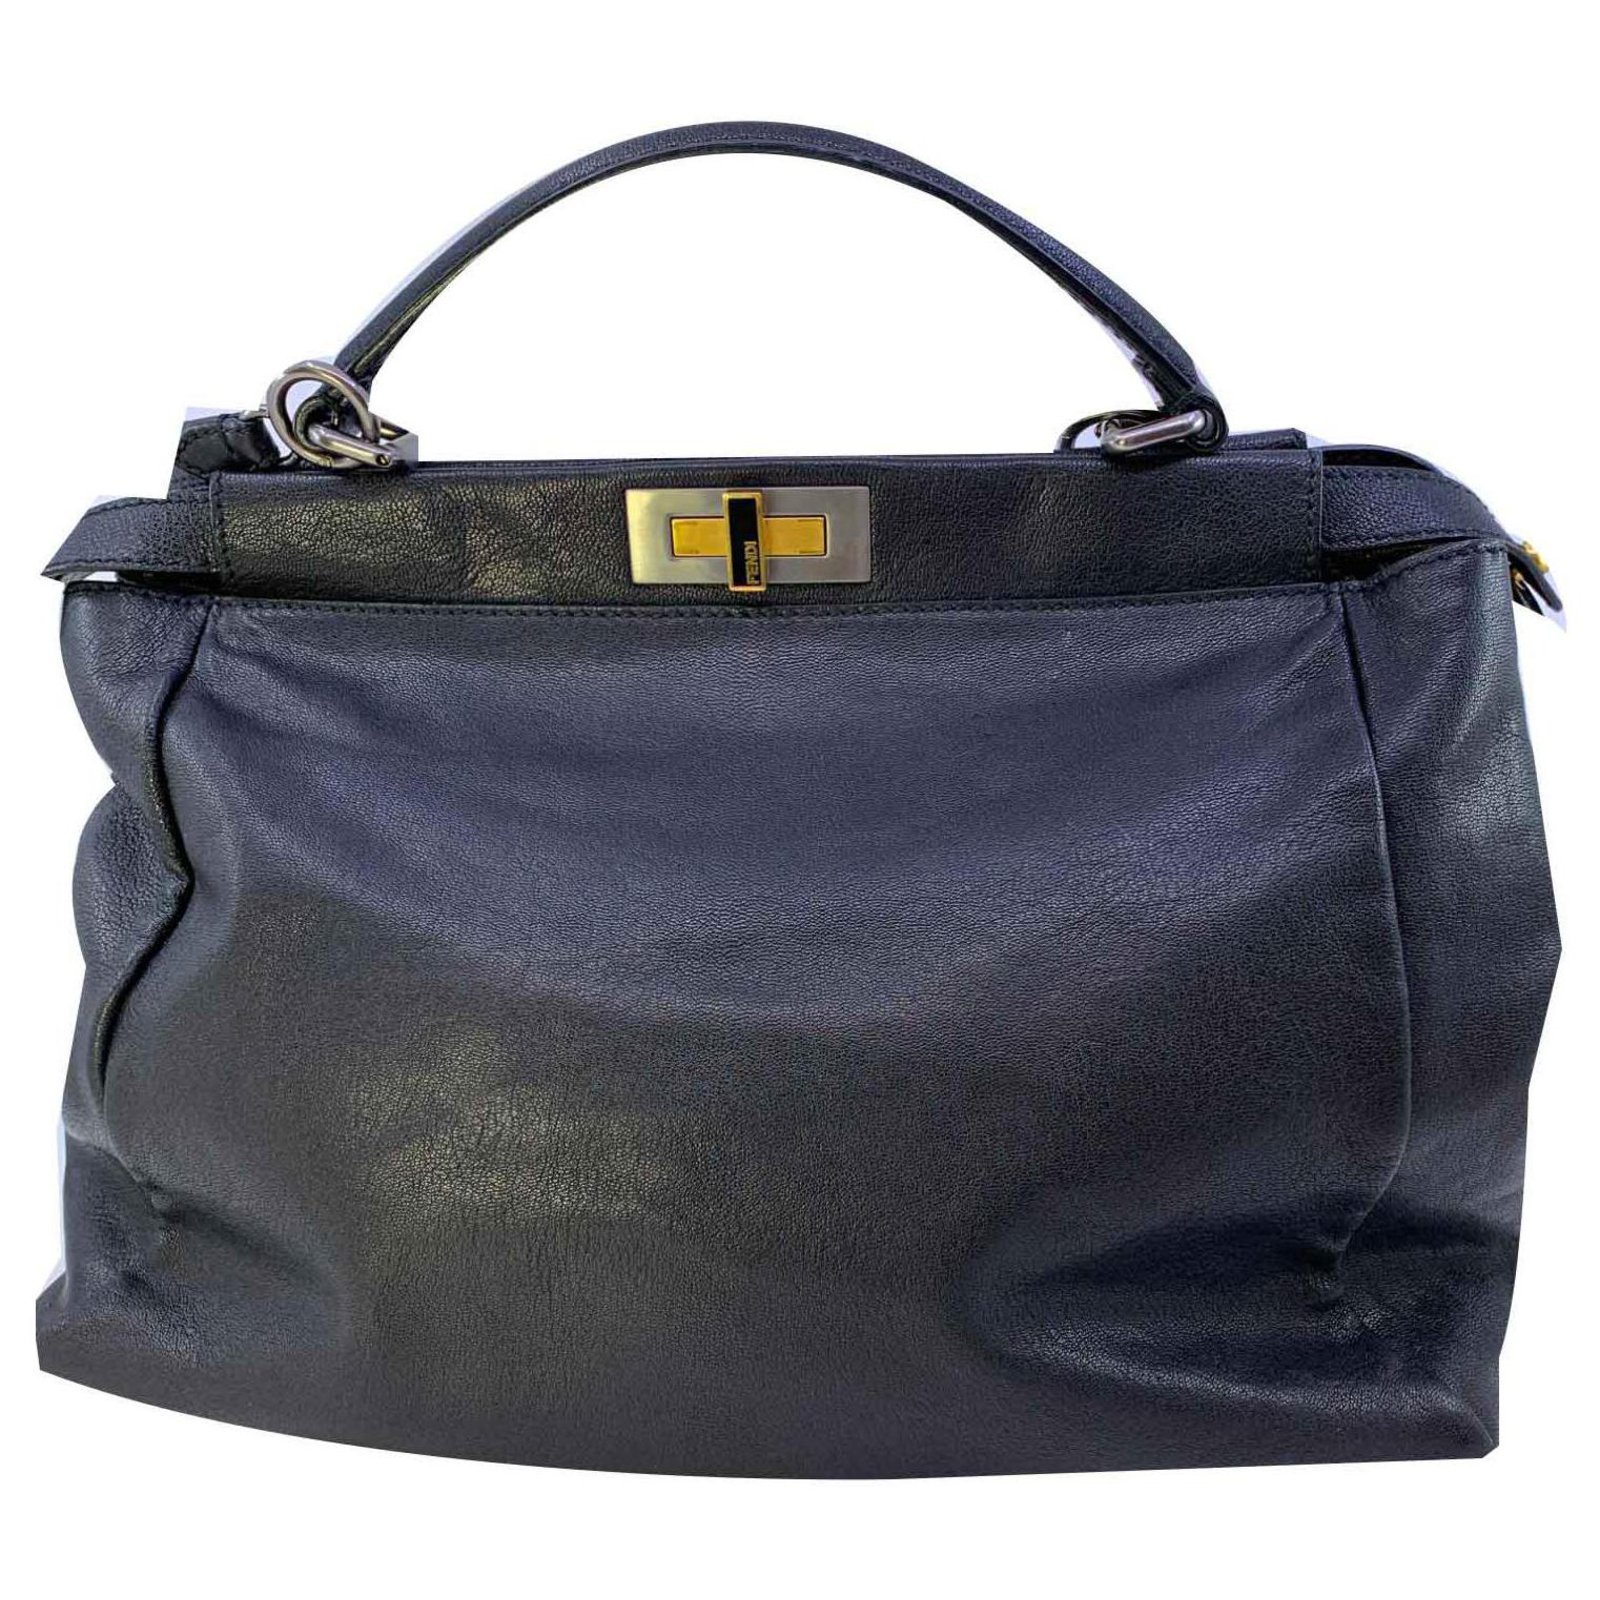 0886ffed36bc Fendi Fendi Peekaboo large model Handbags Leather